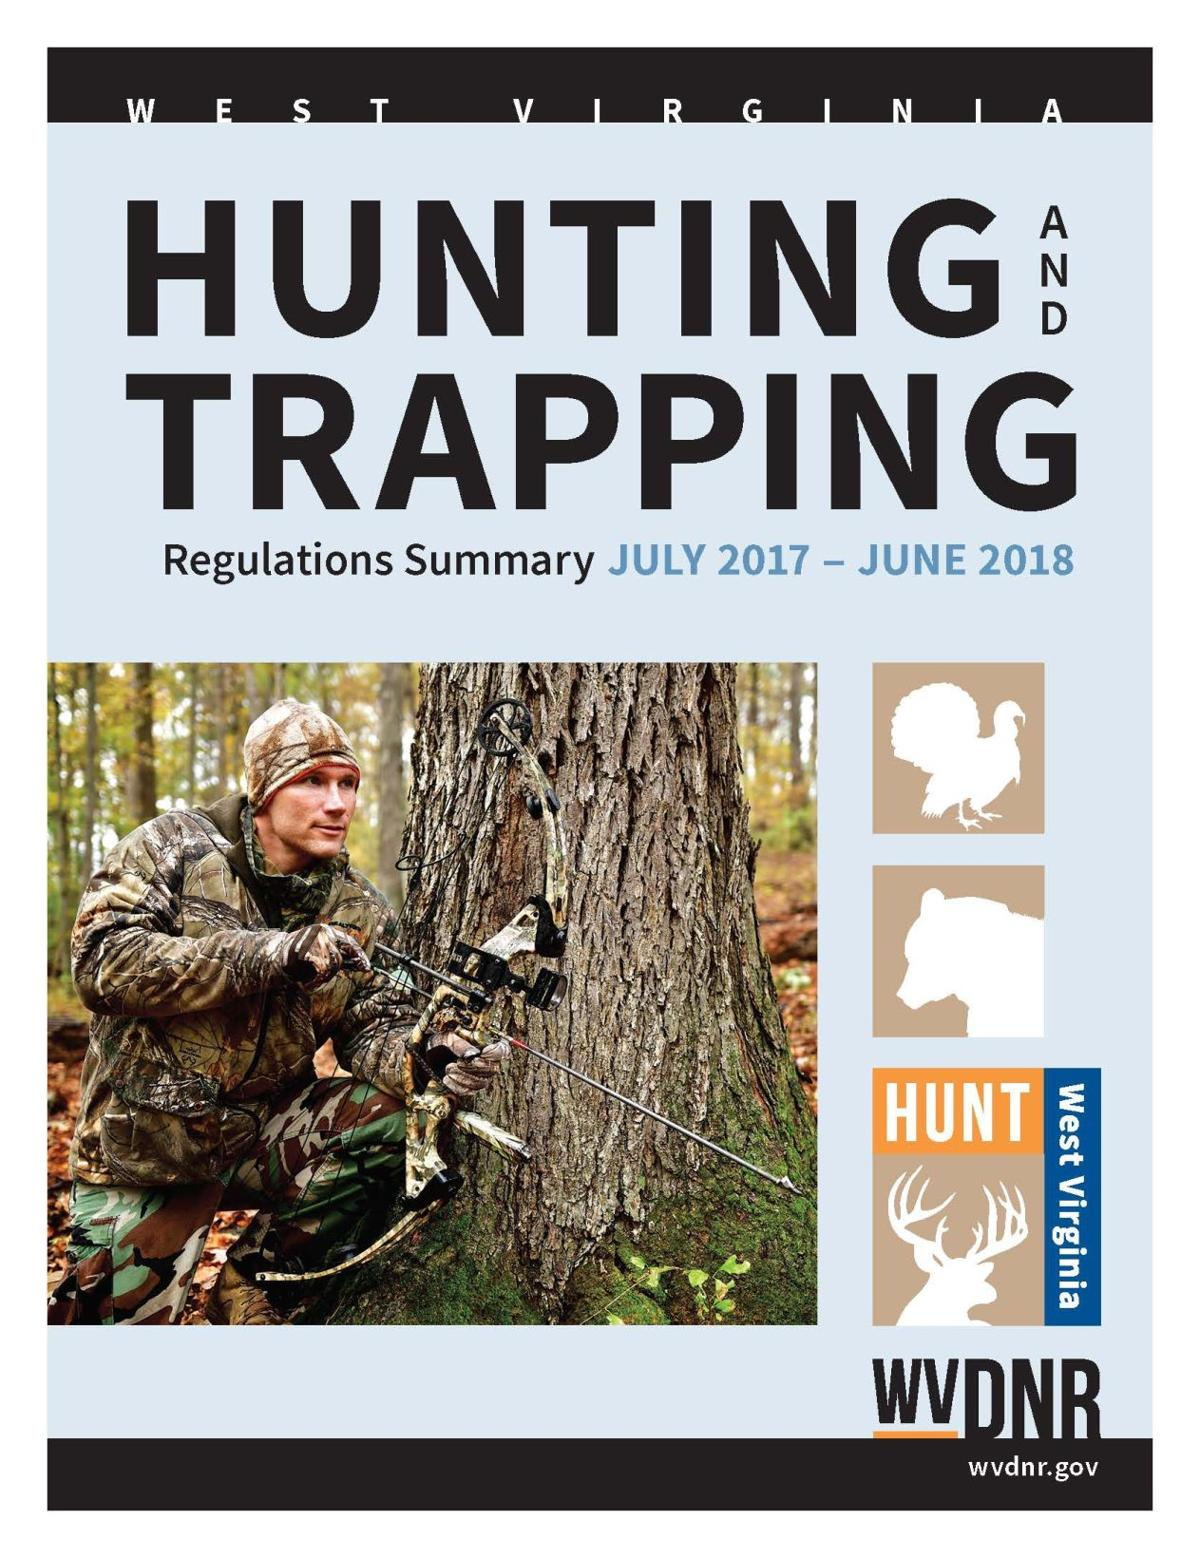 Wv dnr new hunting regulations summary now available for Wv fishing license online